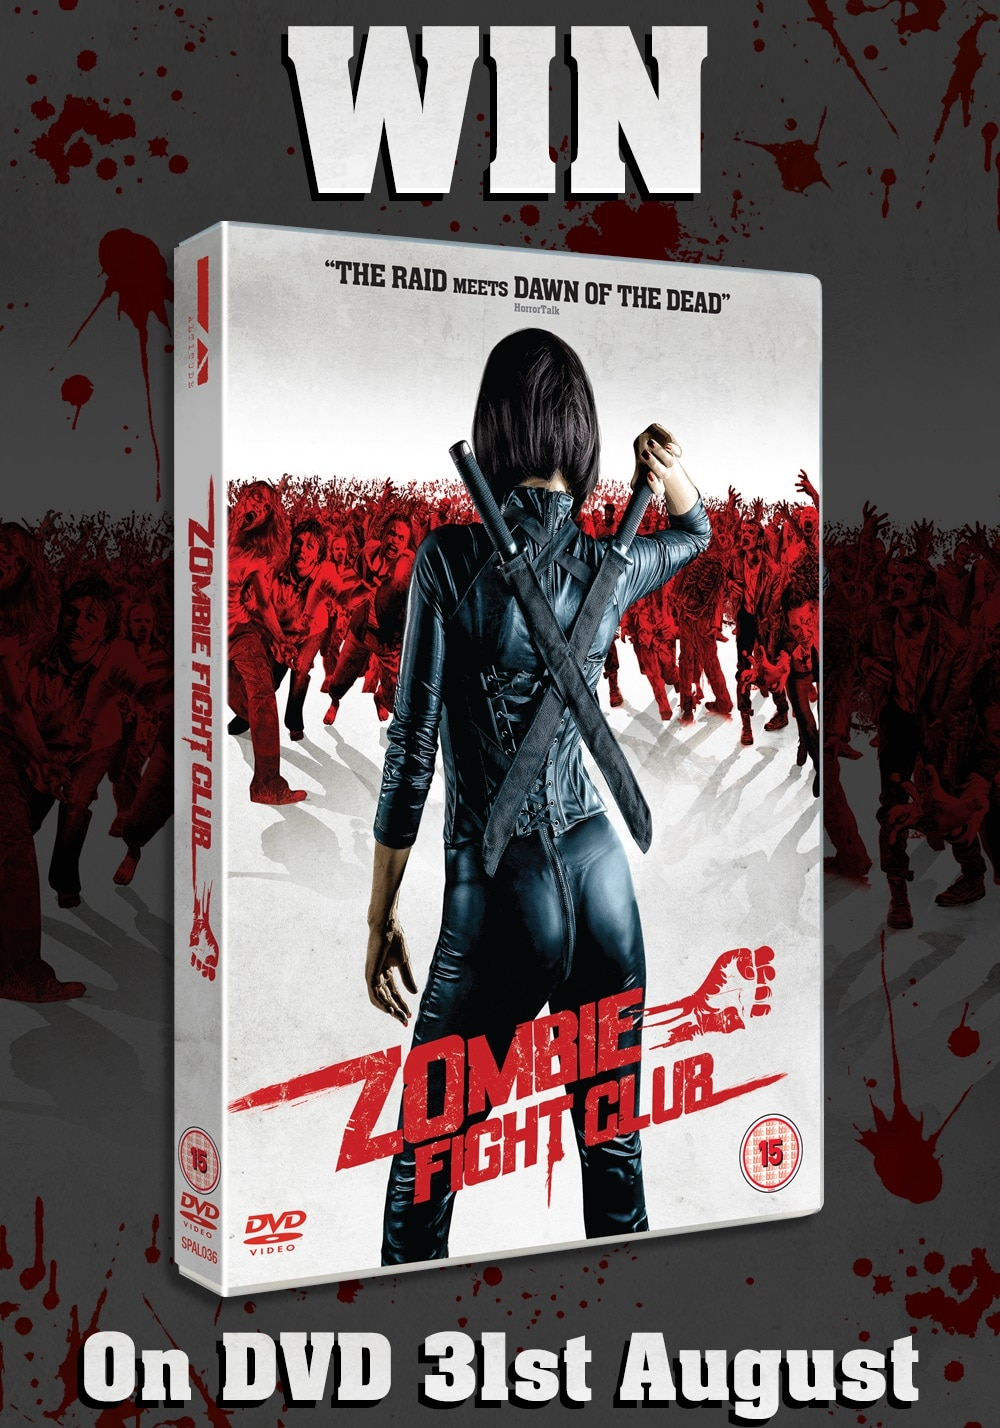 Zombie Fight Club UK DVD Competition